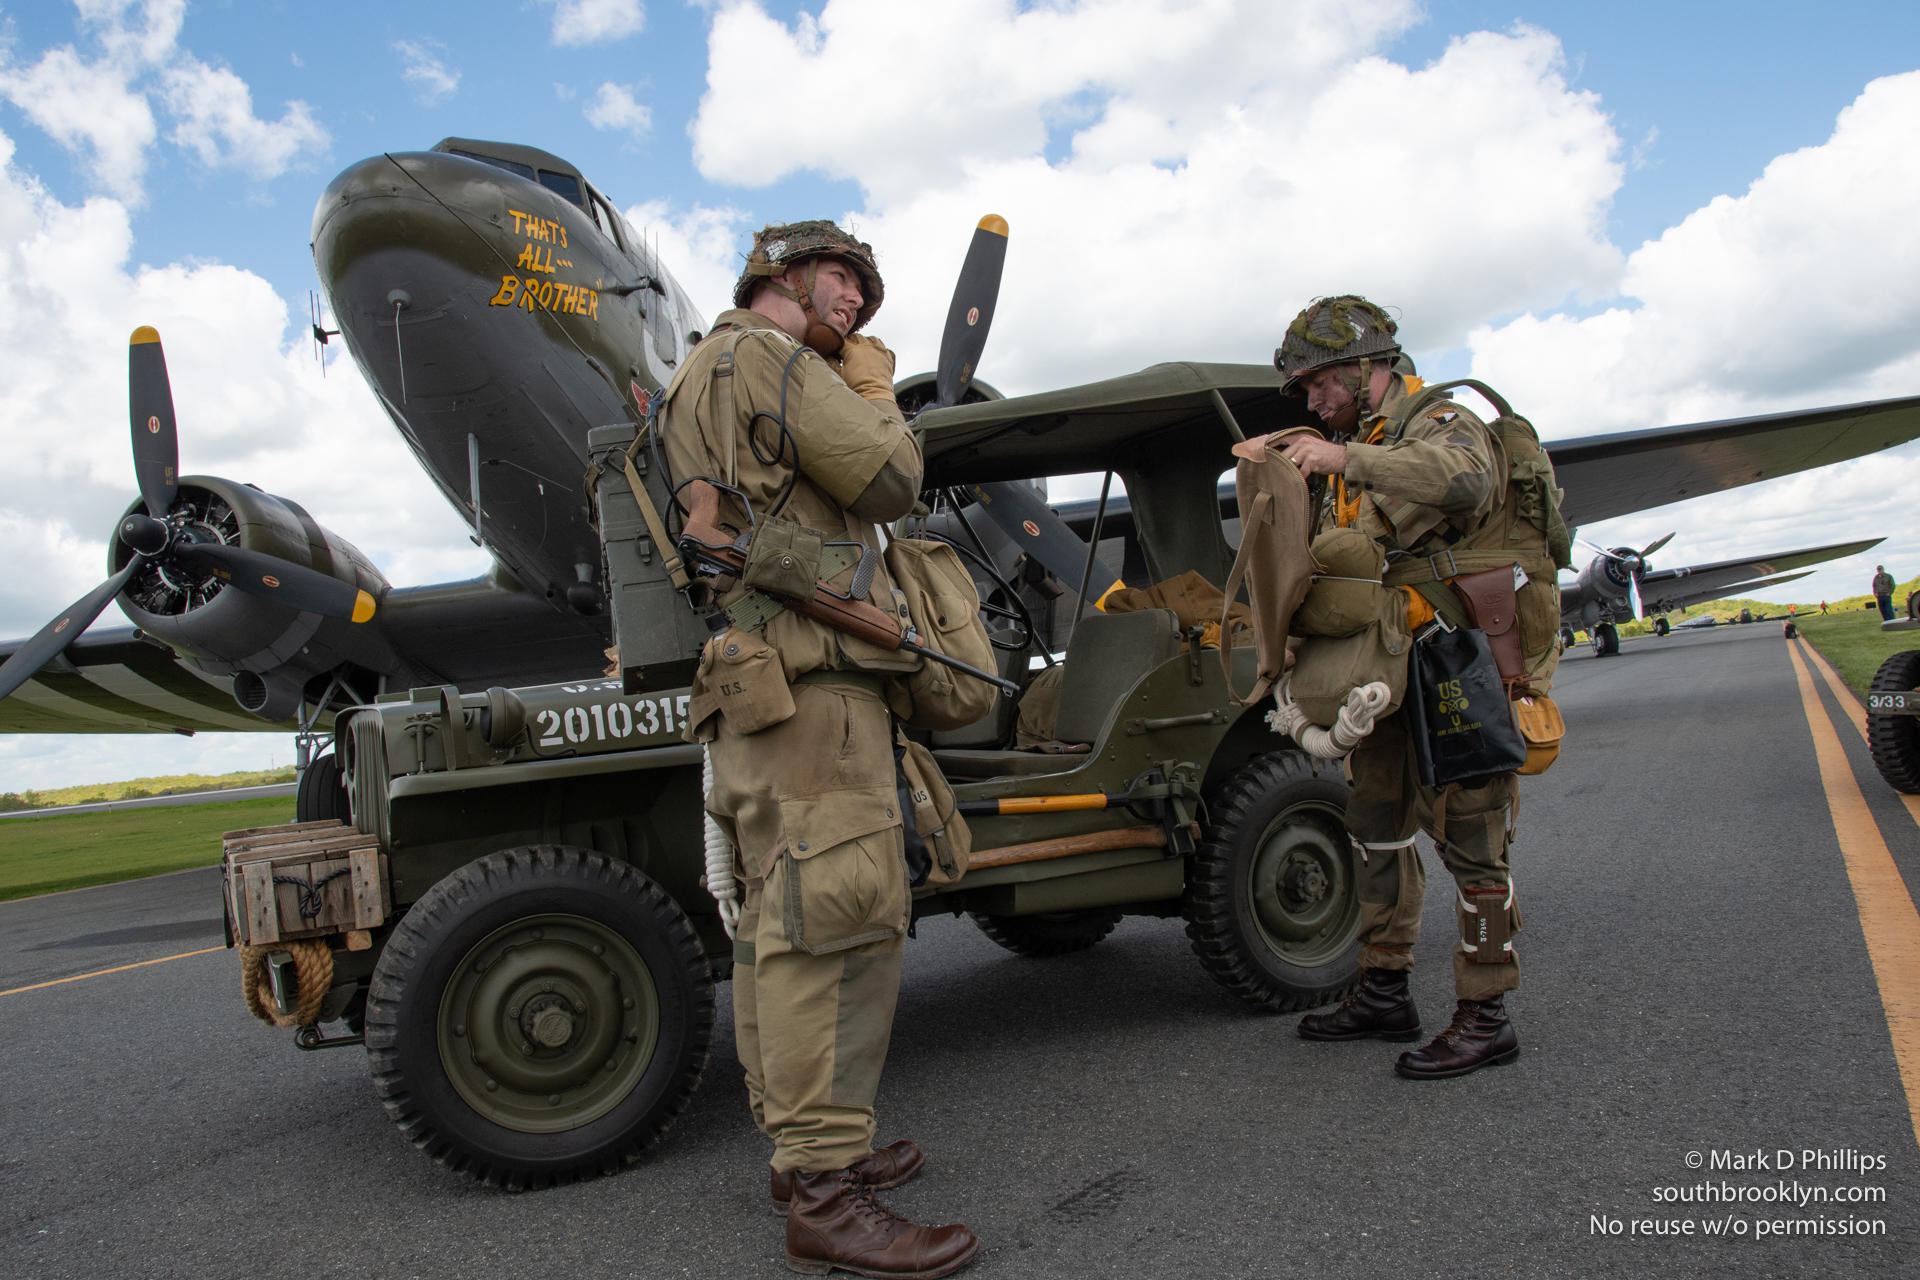 World War II reenactors, several of whom will jump from the planes over Normandy in the anniversary celebration, completed the transformation as they drove up in a jeep with all their gear to begin the invasion of Europe. ©Mark D Phillips